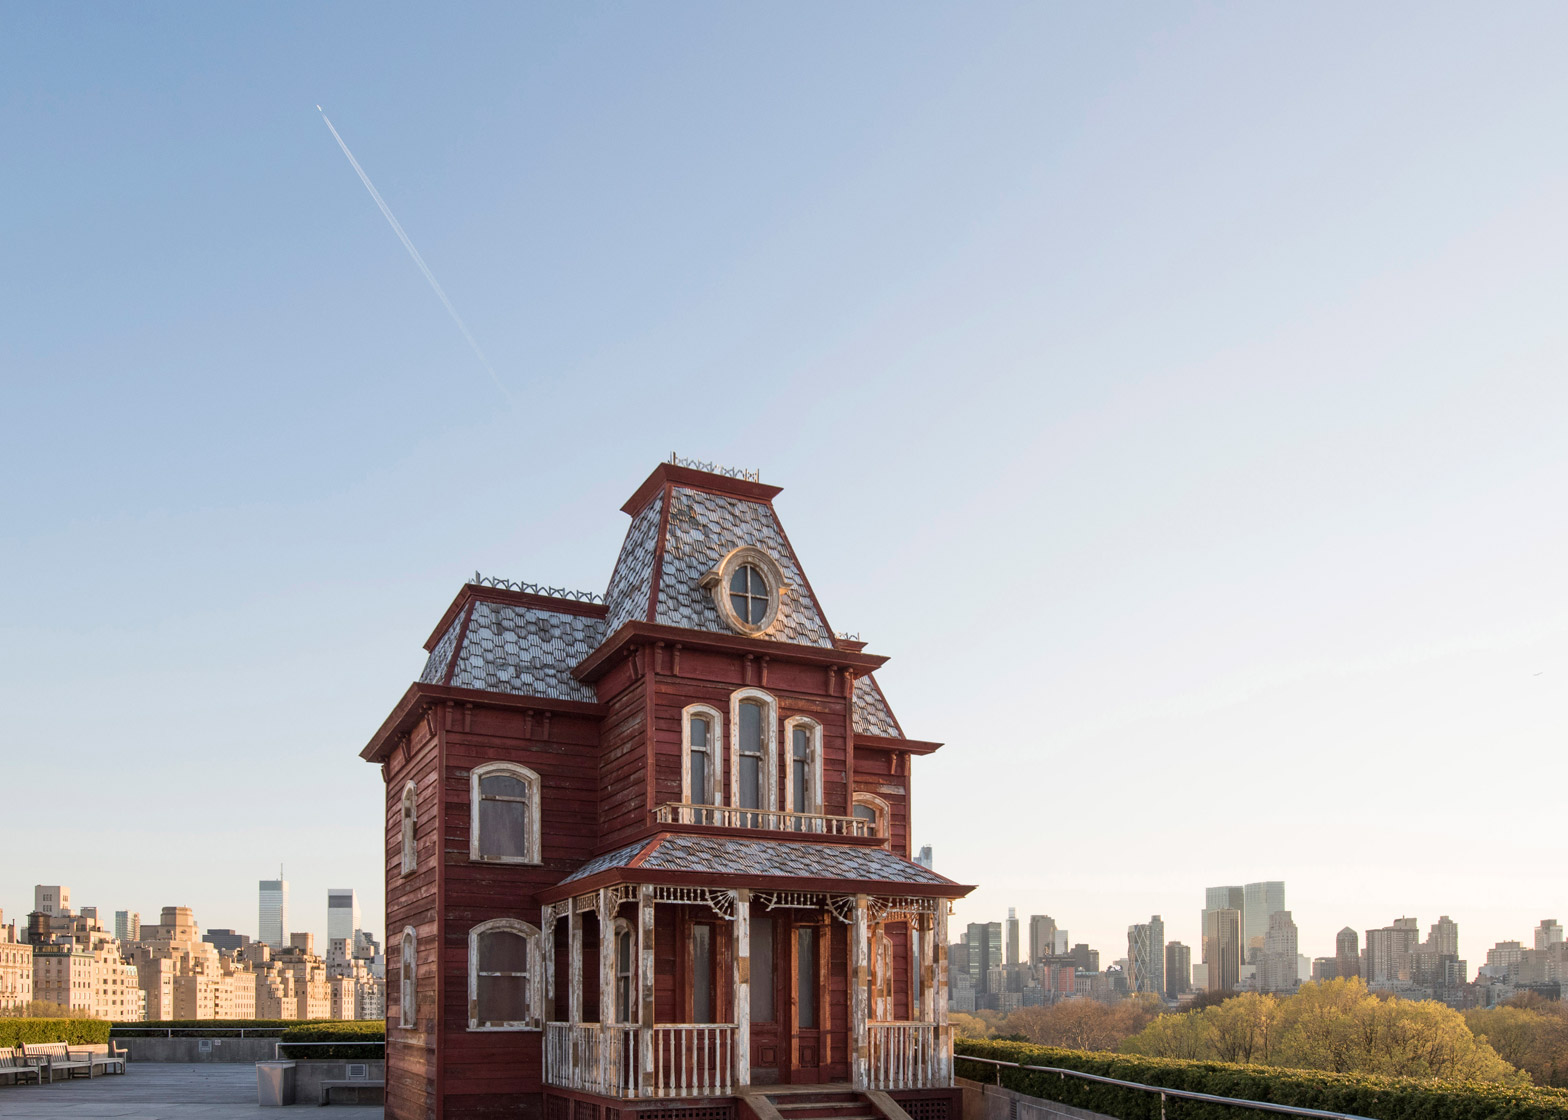 transitional-object-psychobarn-cornelia-parker-met-roof-garden-installation-new-york-usa_dezeen_1568_12